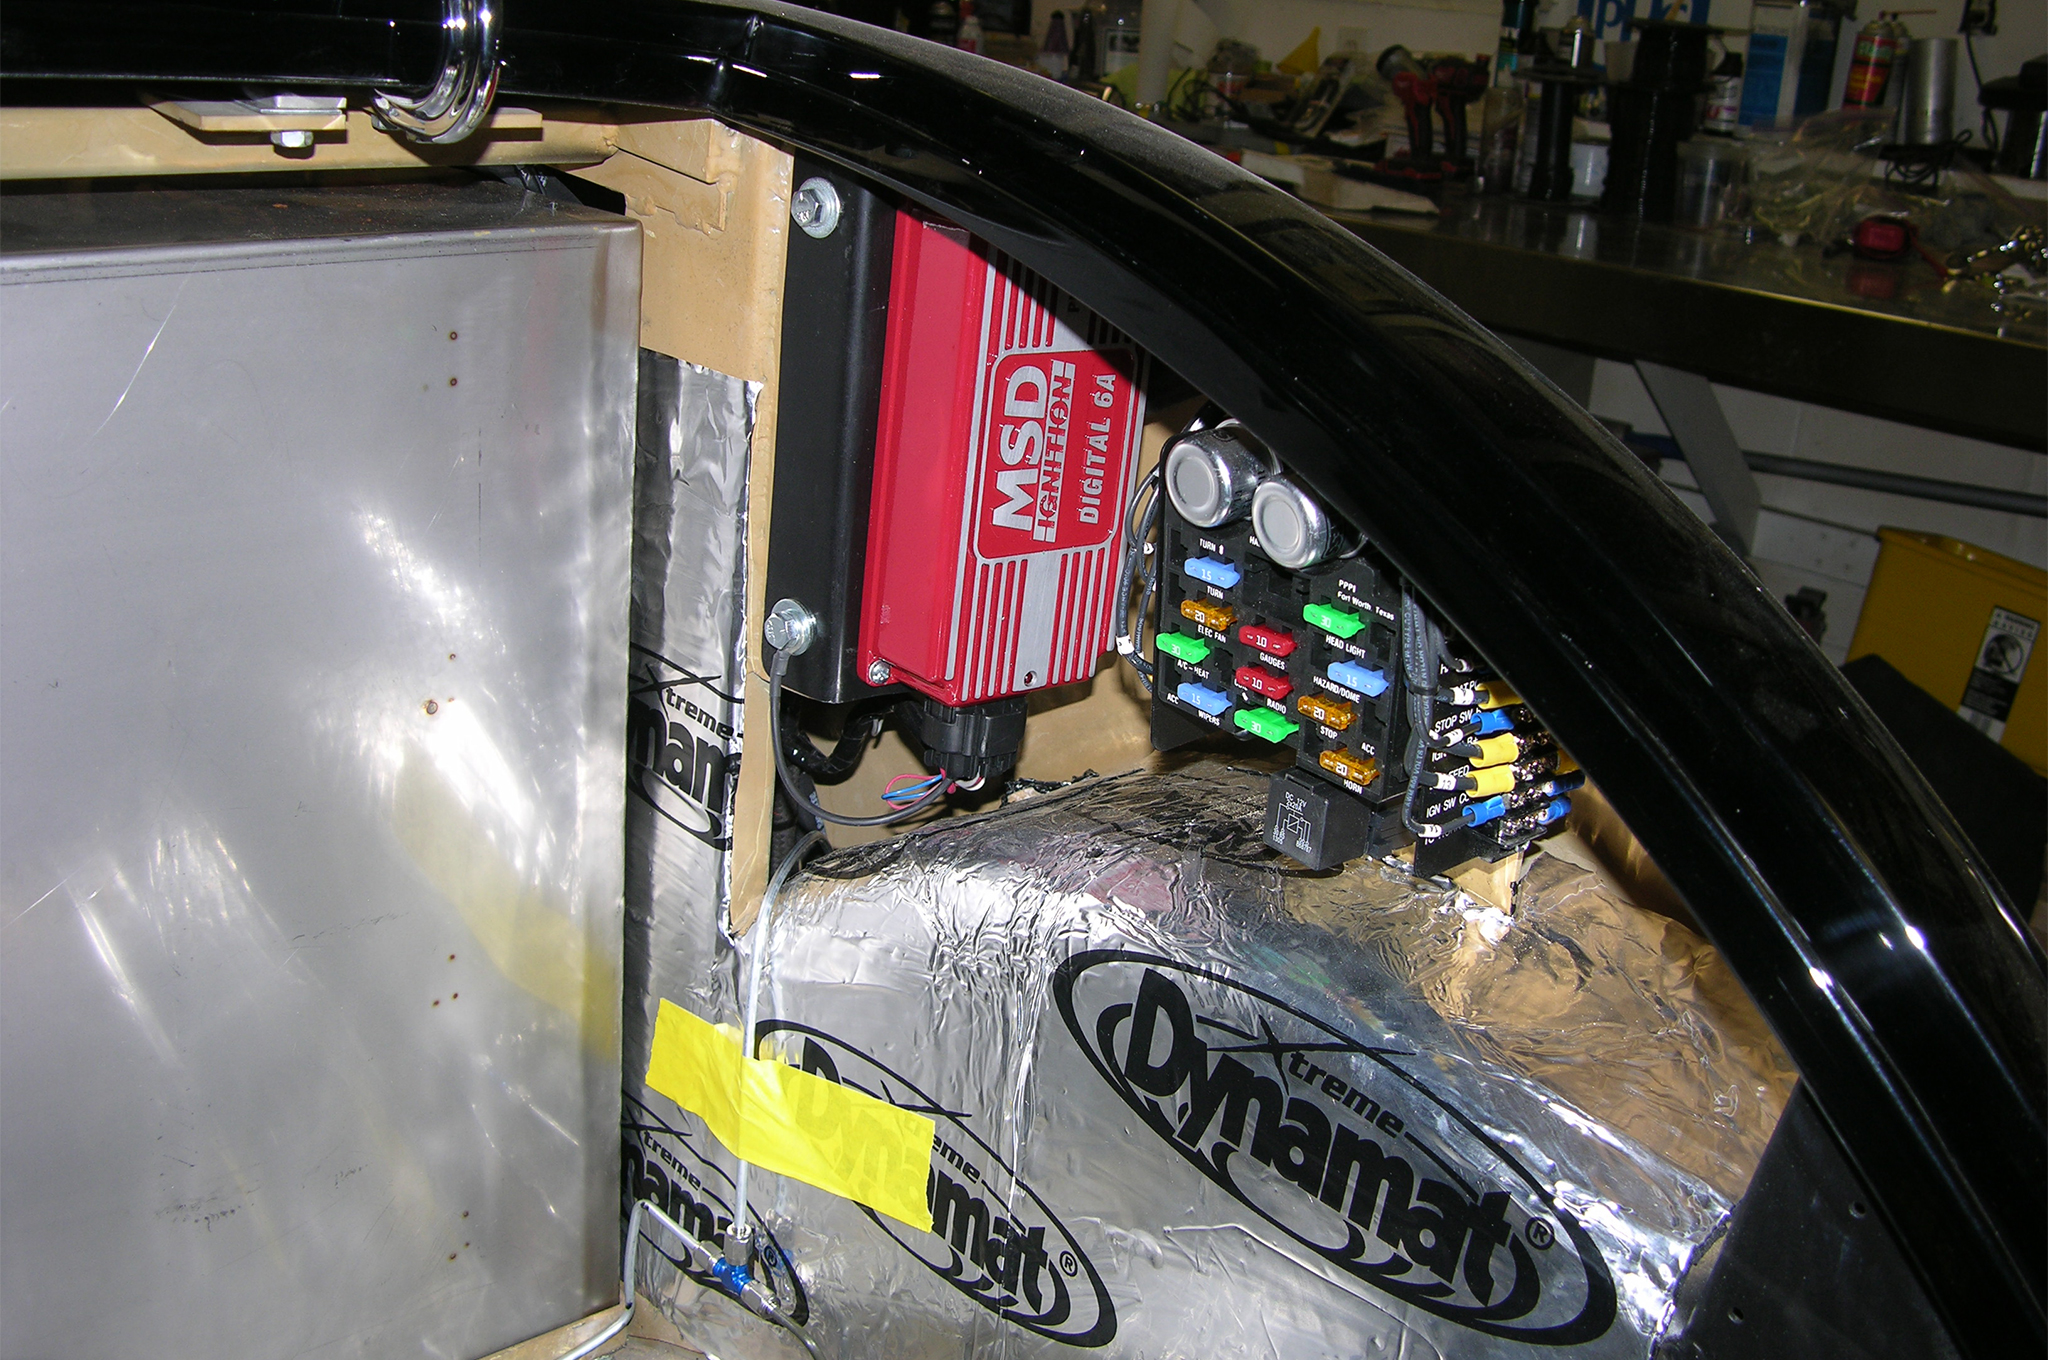 The wiring has been installed as has the stainless gas tank, insulation, and other components that install into the body to prepare for upholstery.